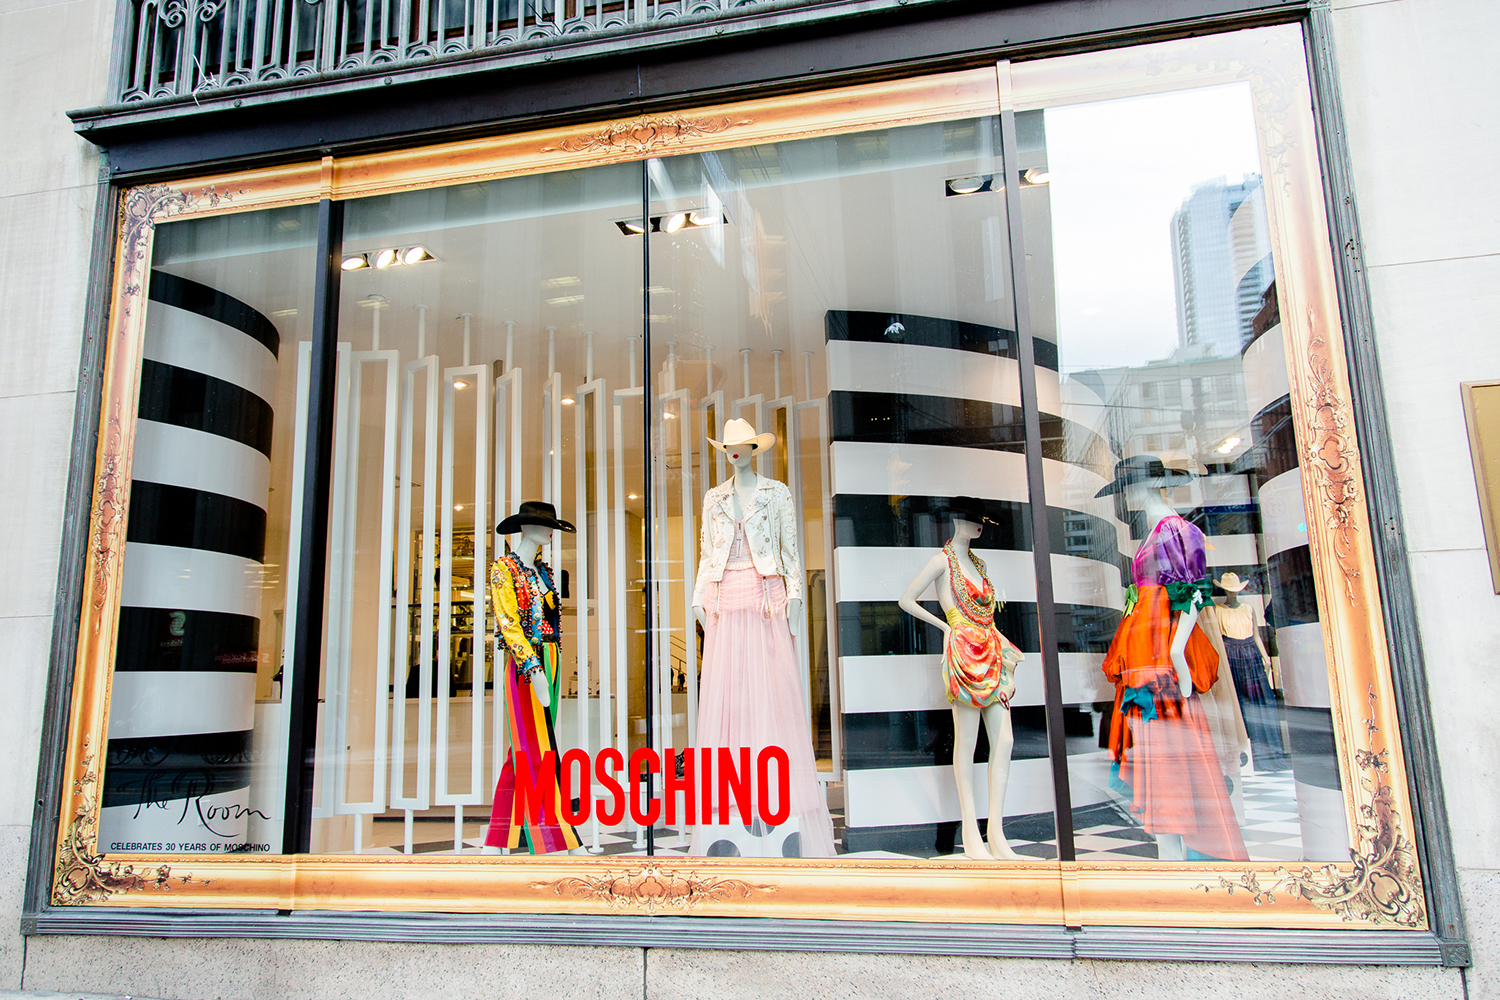 <b>Moschino: For Fashion Victims Only</b>